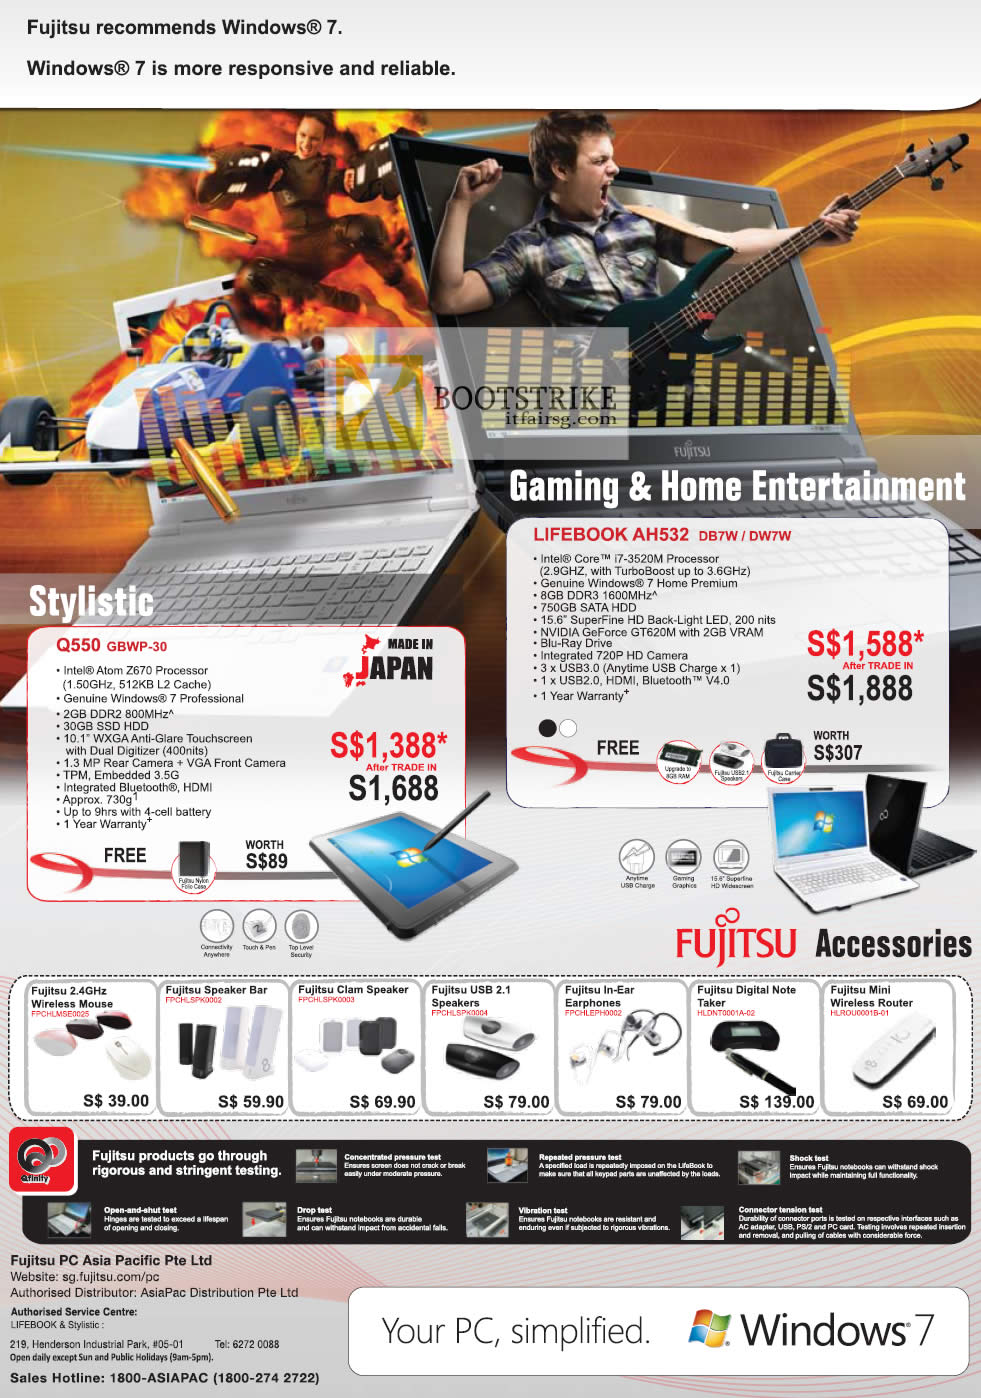 COMEX 2012 price list image brochure of Fujitsu Notebooks Lifebook Q550 GBWP-30, AH532 DB7W DW7W, Accessories Mouse, Speakers, Earphones, Router